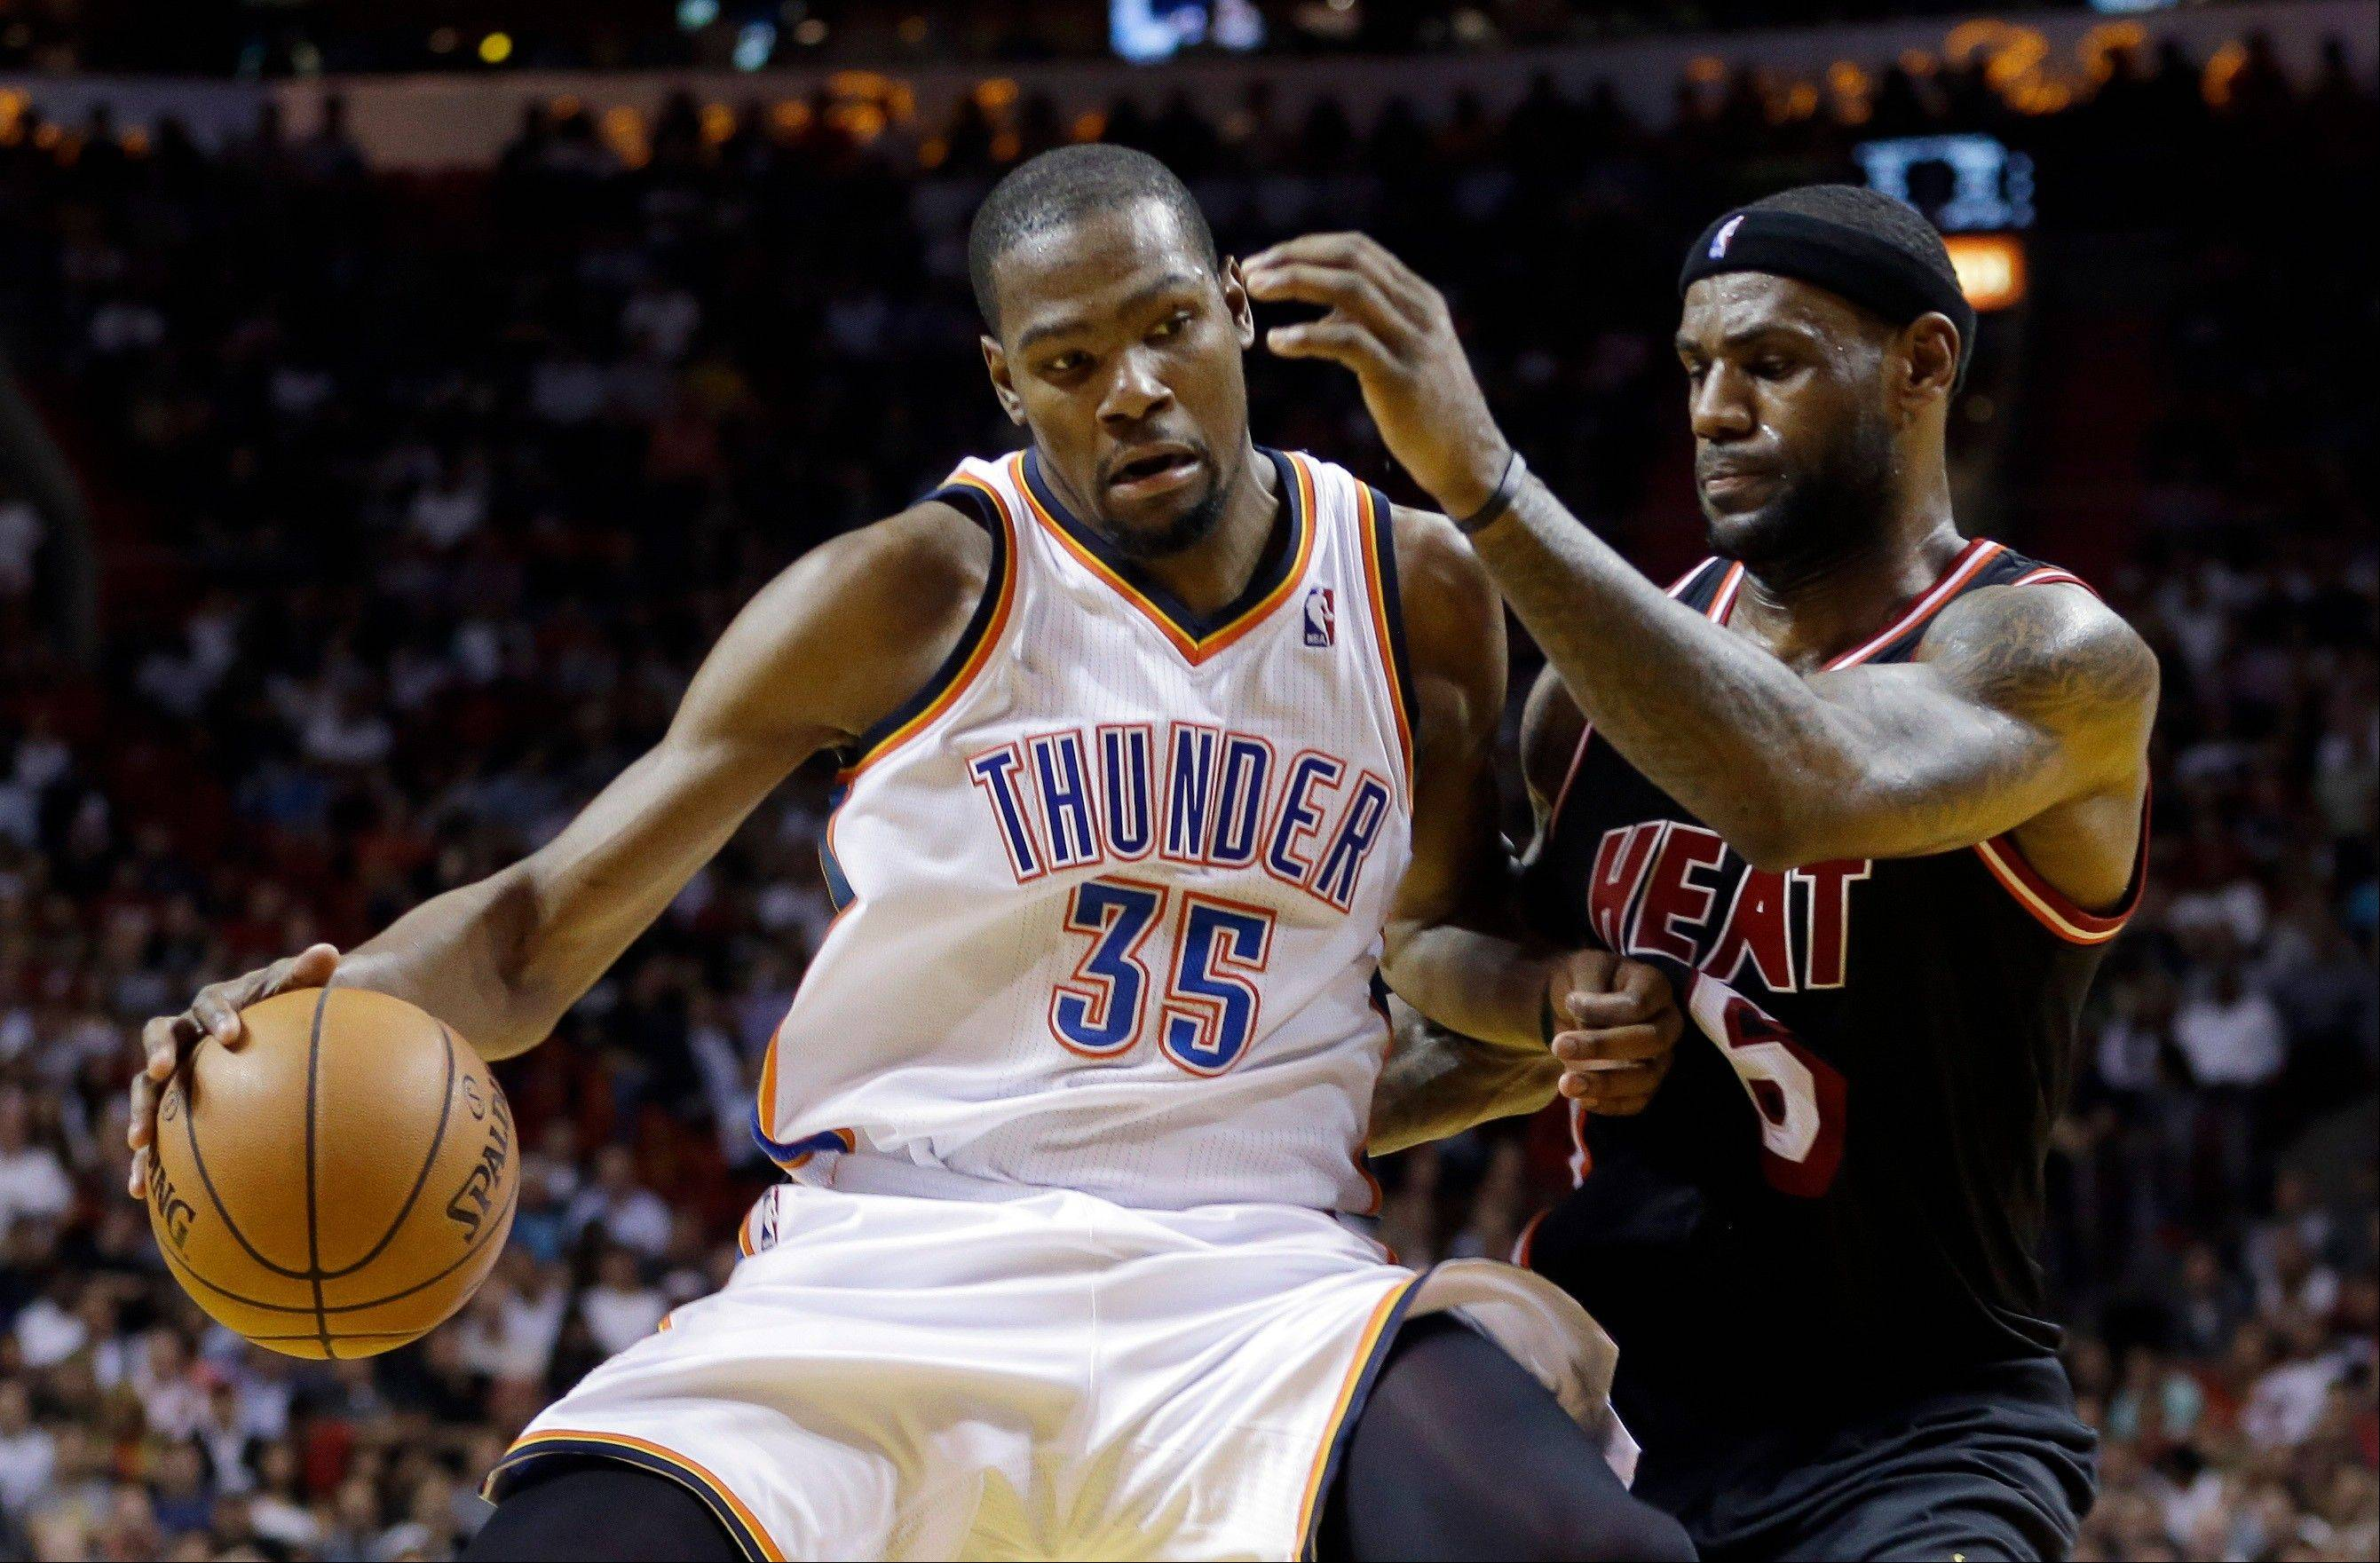 Miami Heat small forward LeBron James (6) puts pressure on Oklahoma City Thunder small forward Kevin Durant (35) during the fourth period of an NBA basketball game in Miami, Wednesday, Jan. 29, 2014. The Thunder won 112-95.